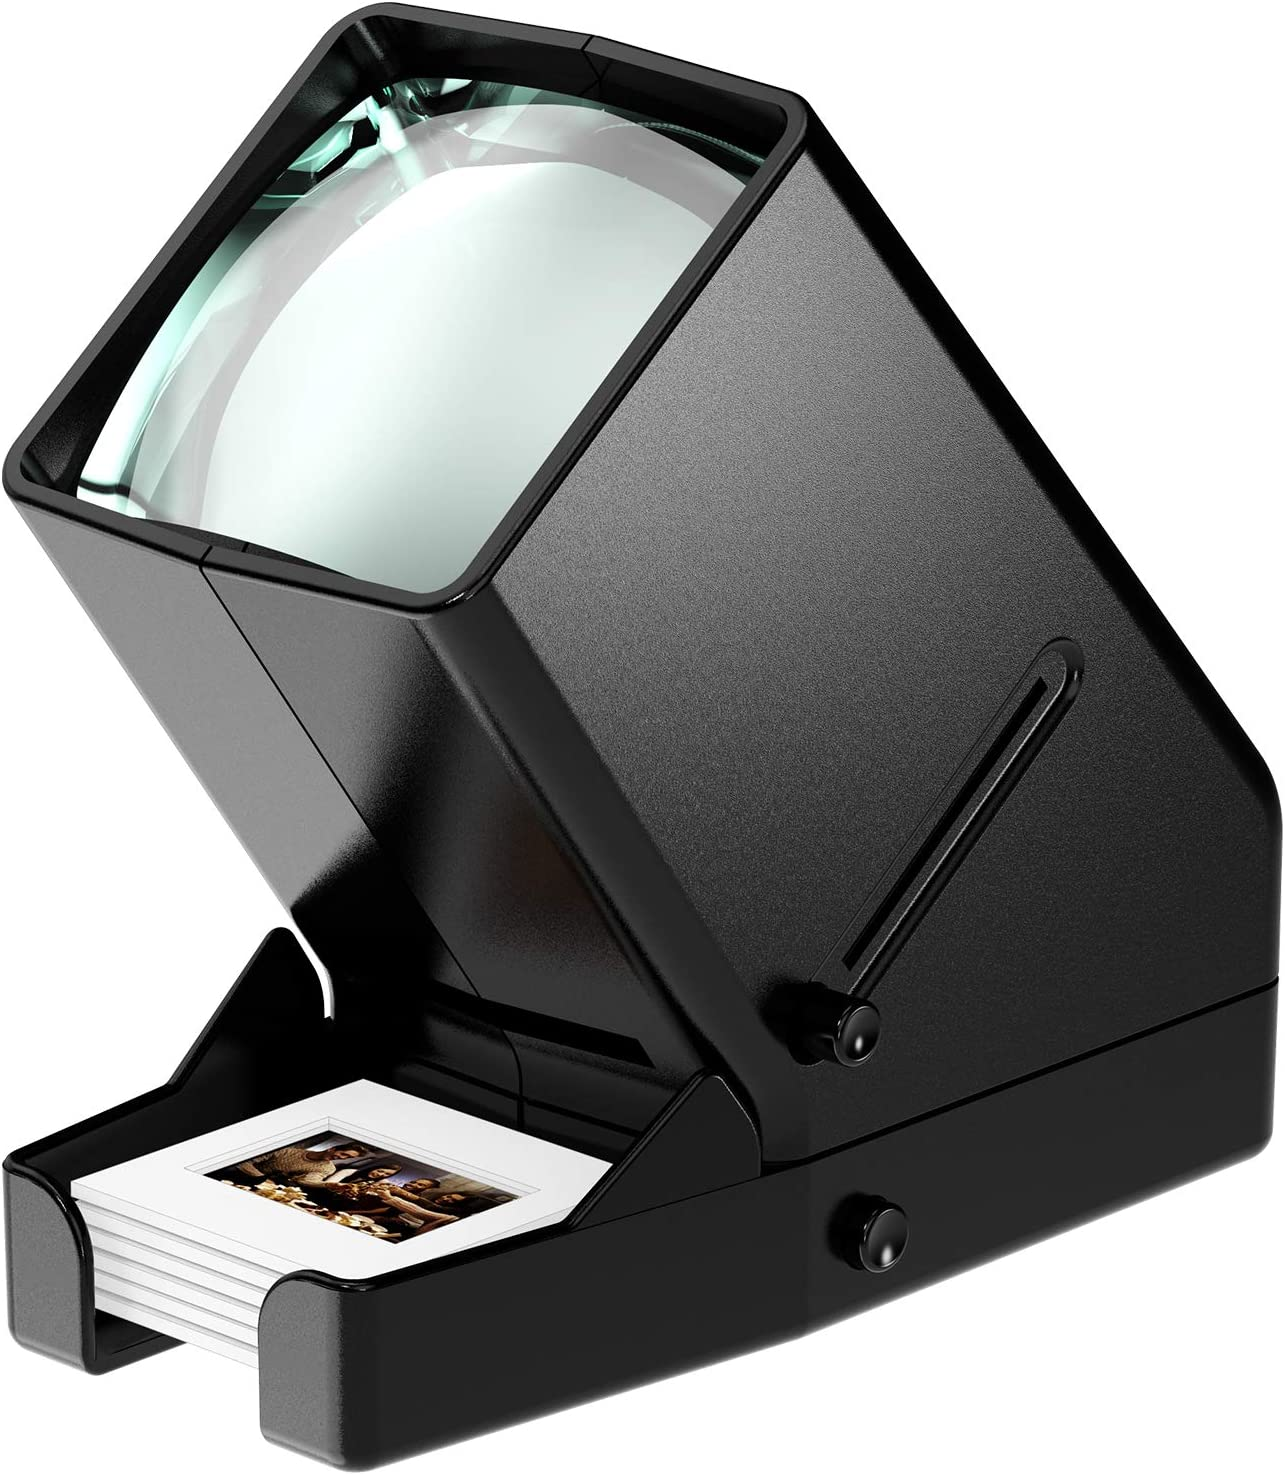 3X Magnification and Desk Top LED Lighted Illuminated Viewing and Battery Operation-for 35mm Slides /& Positive Film Negatives Rybozen 35mm Film and Slide Viewer